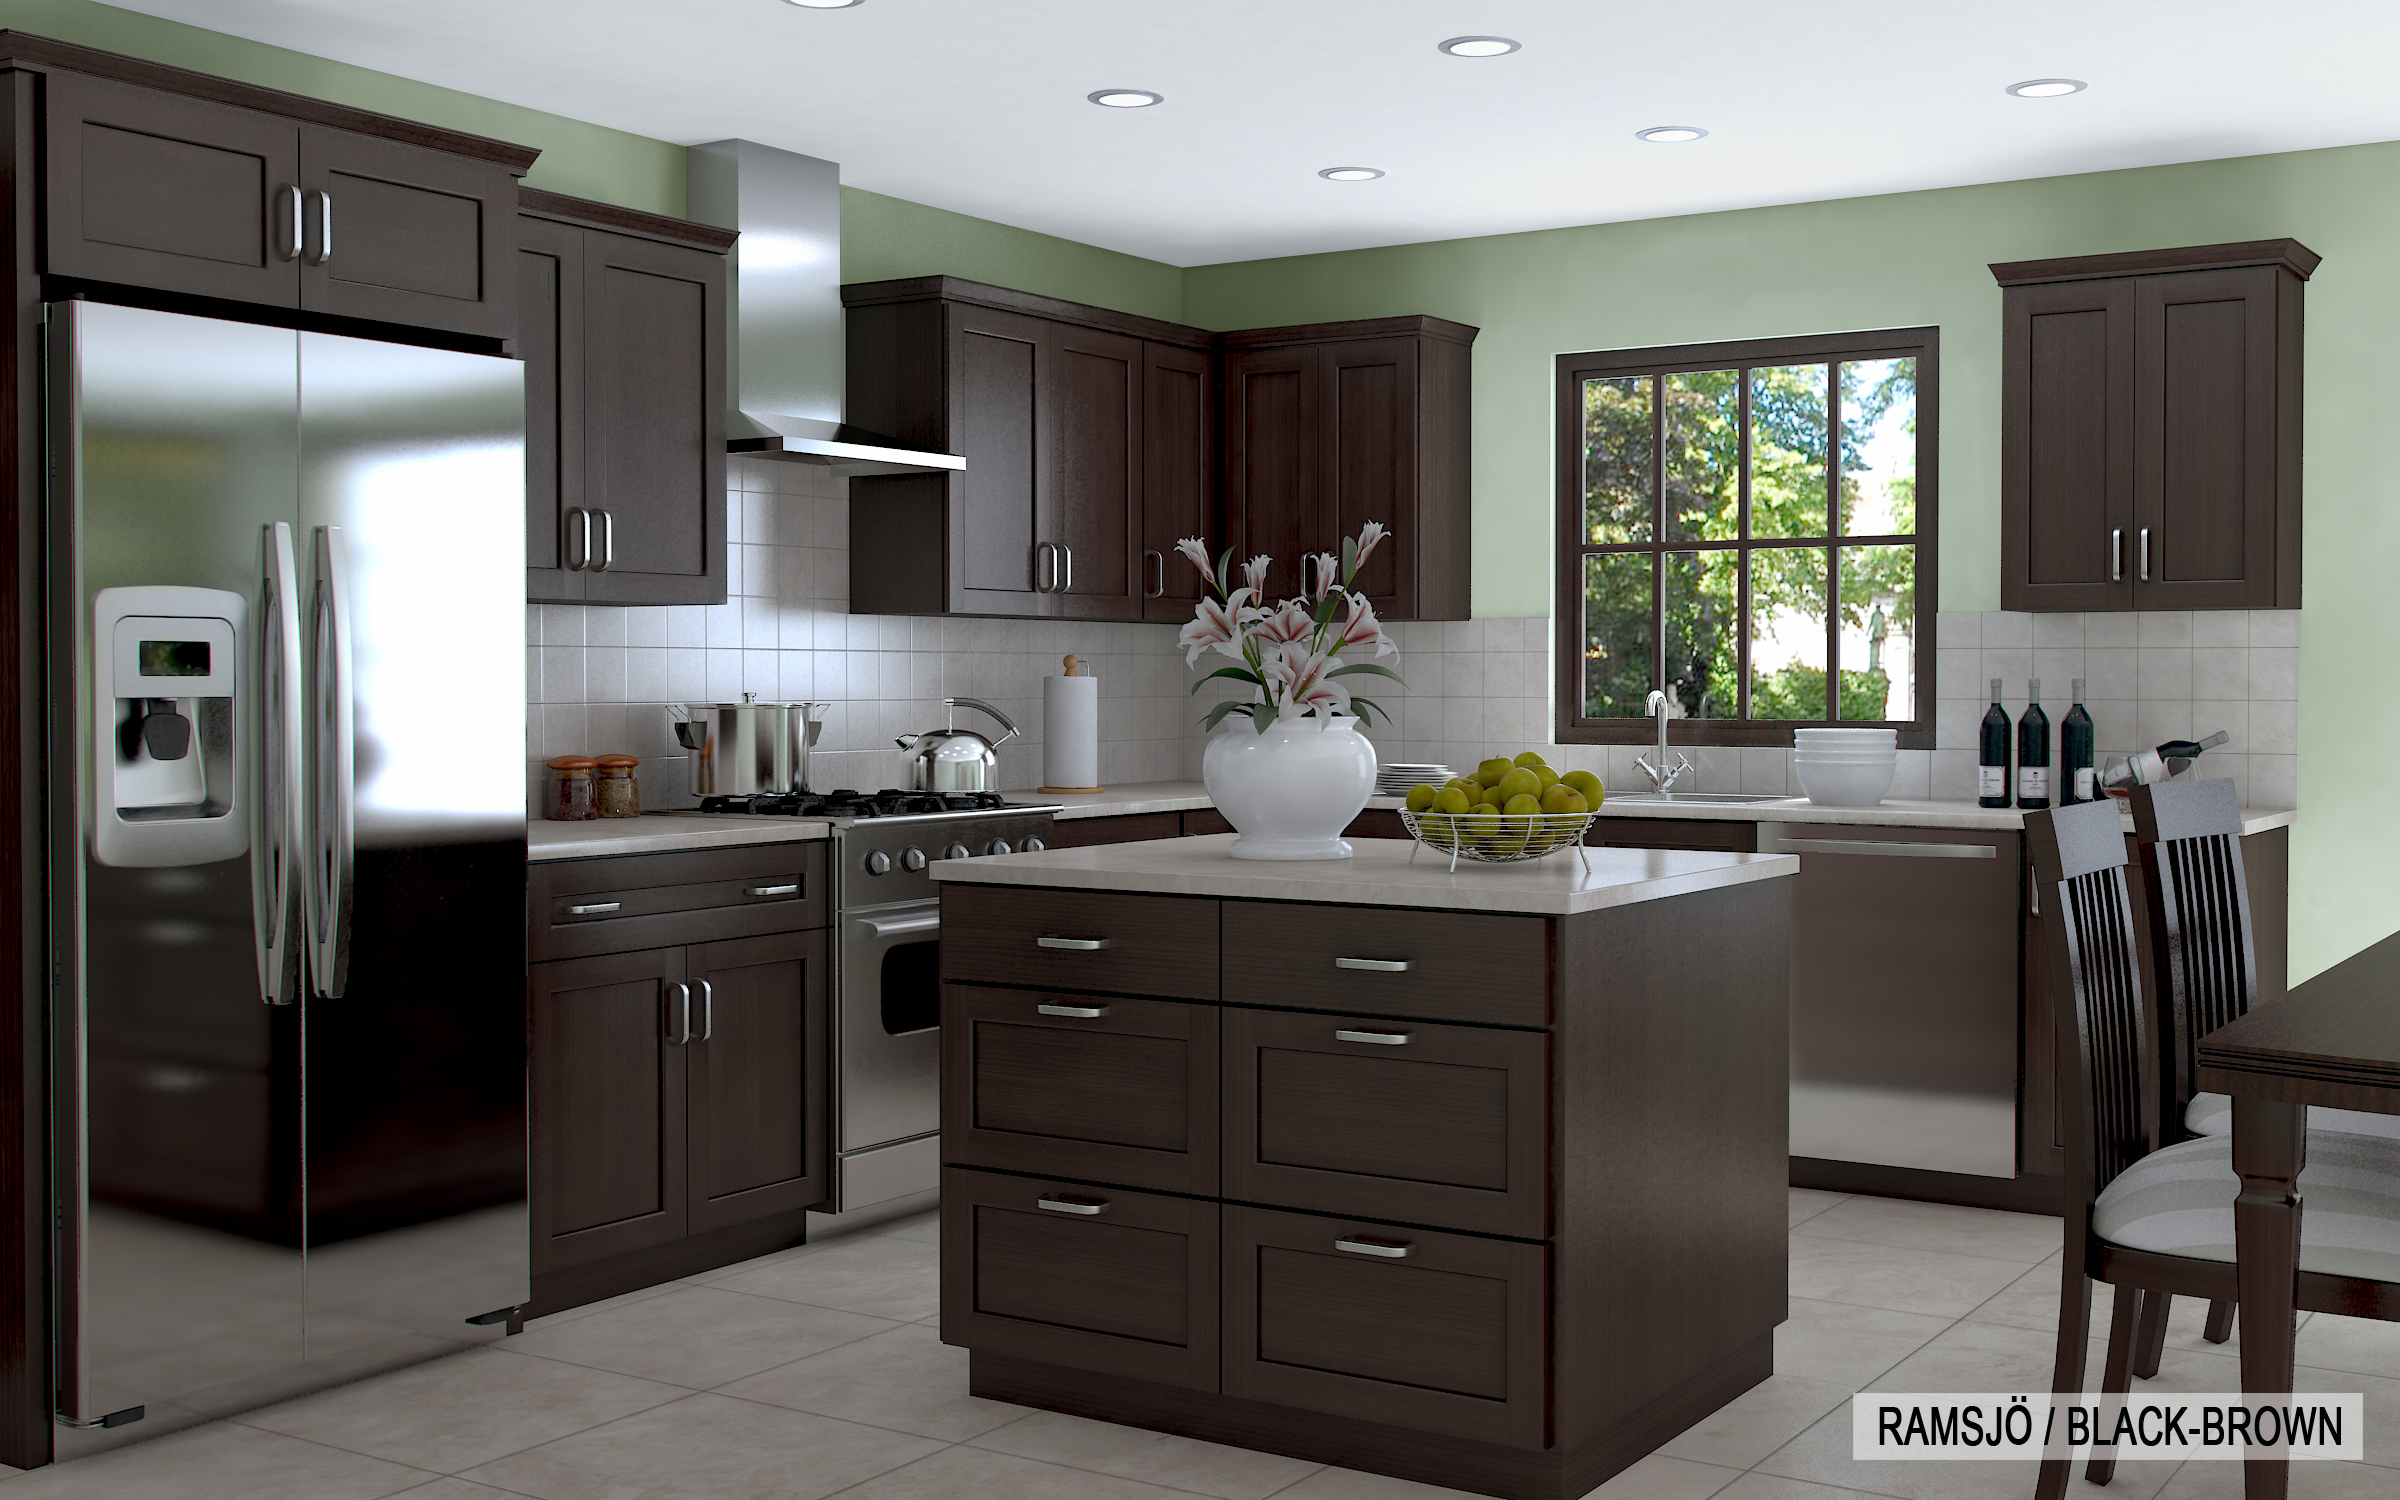 kitchen cabinet ikea design ikea kitchen ideas Ikea Kitchens